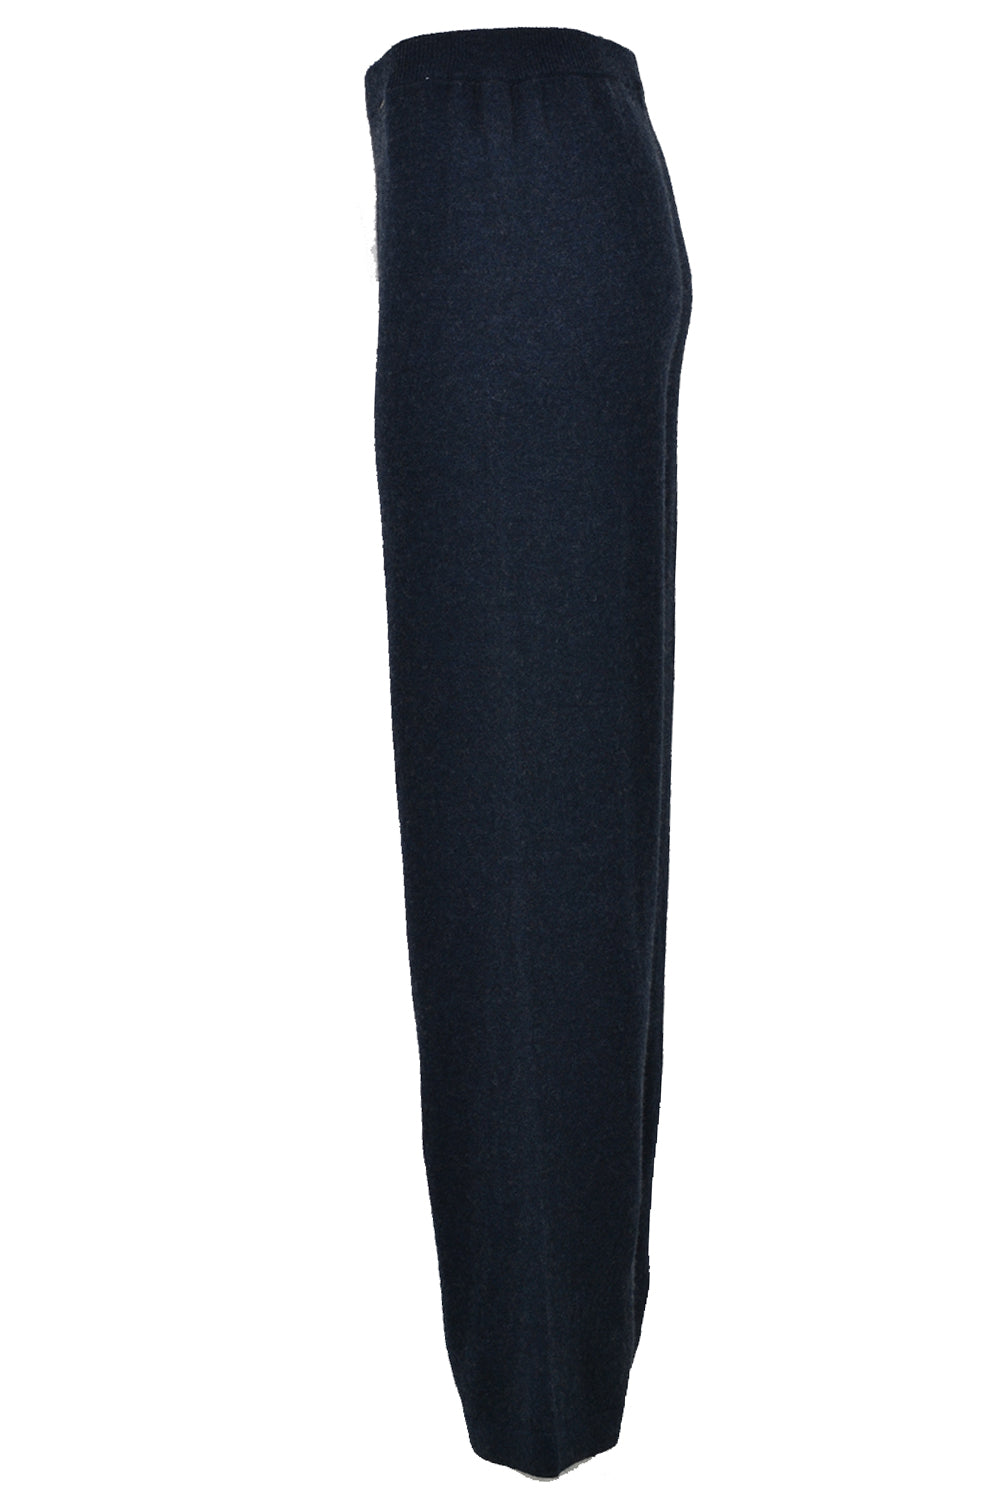 Rosemunde Cashmere Mix Lounge Trousers Dark Navy